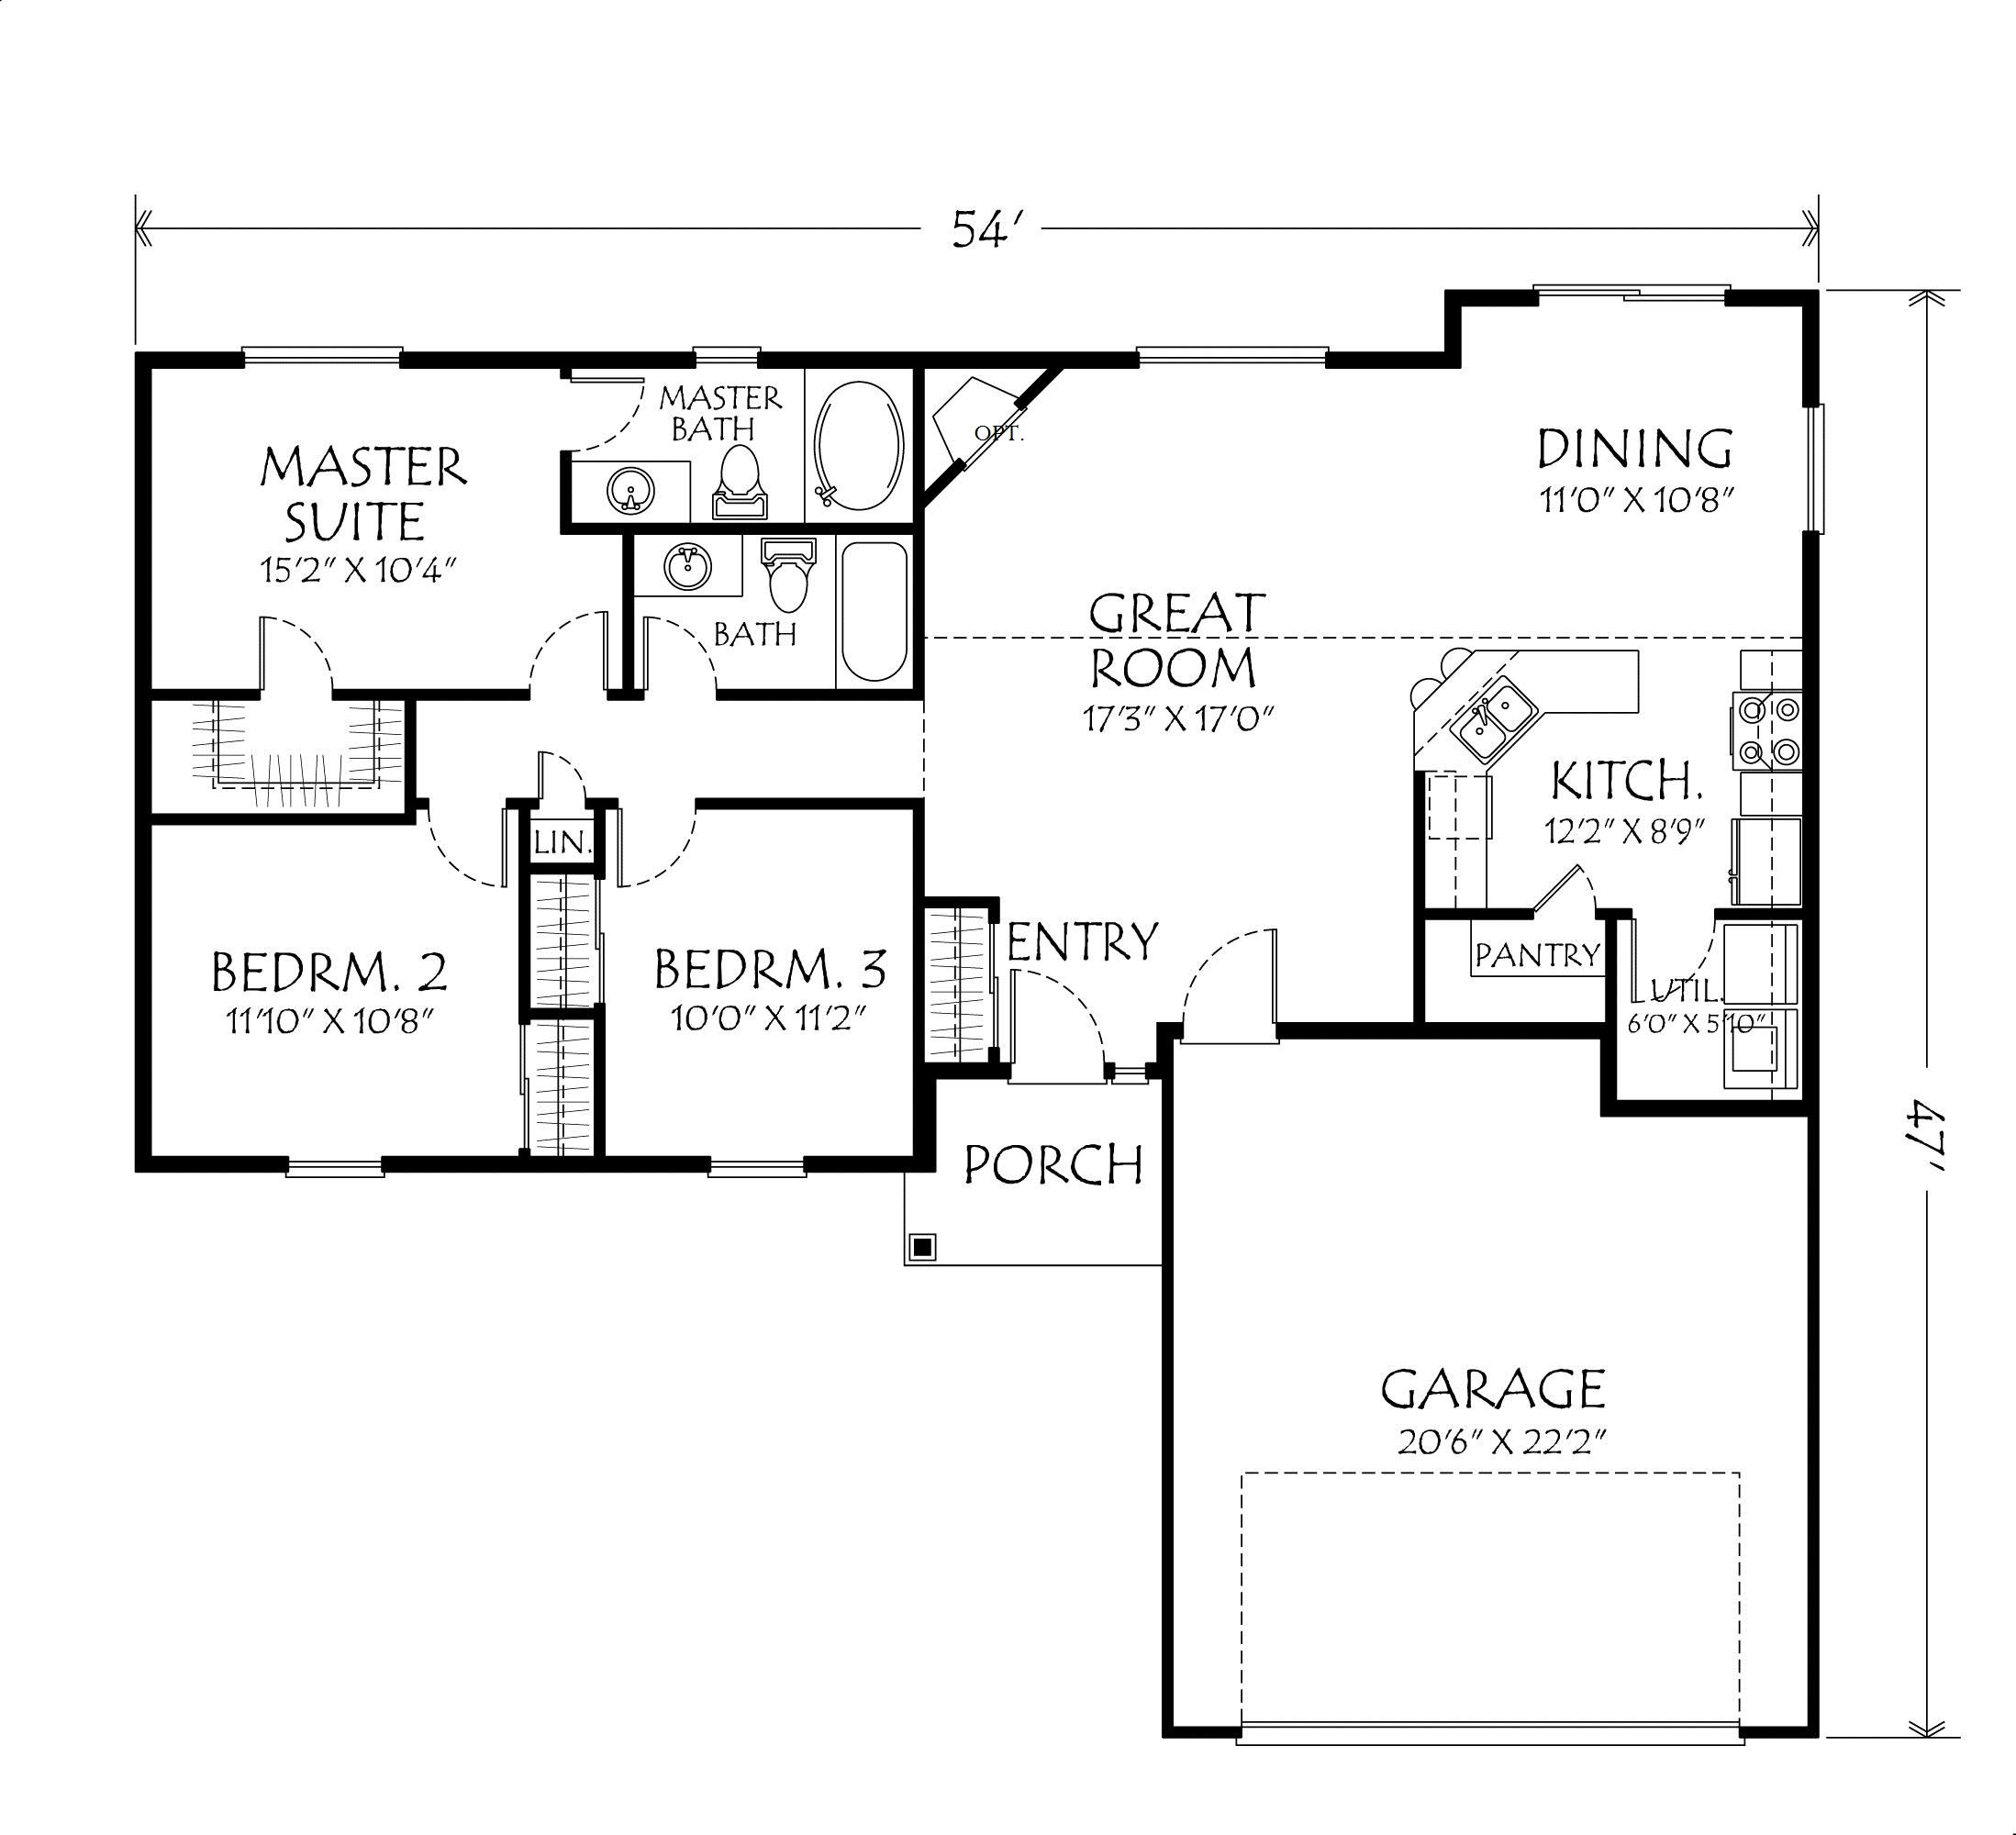 singlestoryopenfloorplans single story plan 3 bedrooms 2 - Single Floor House Plans 2